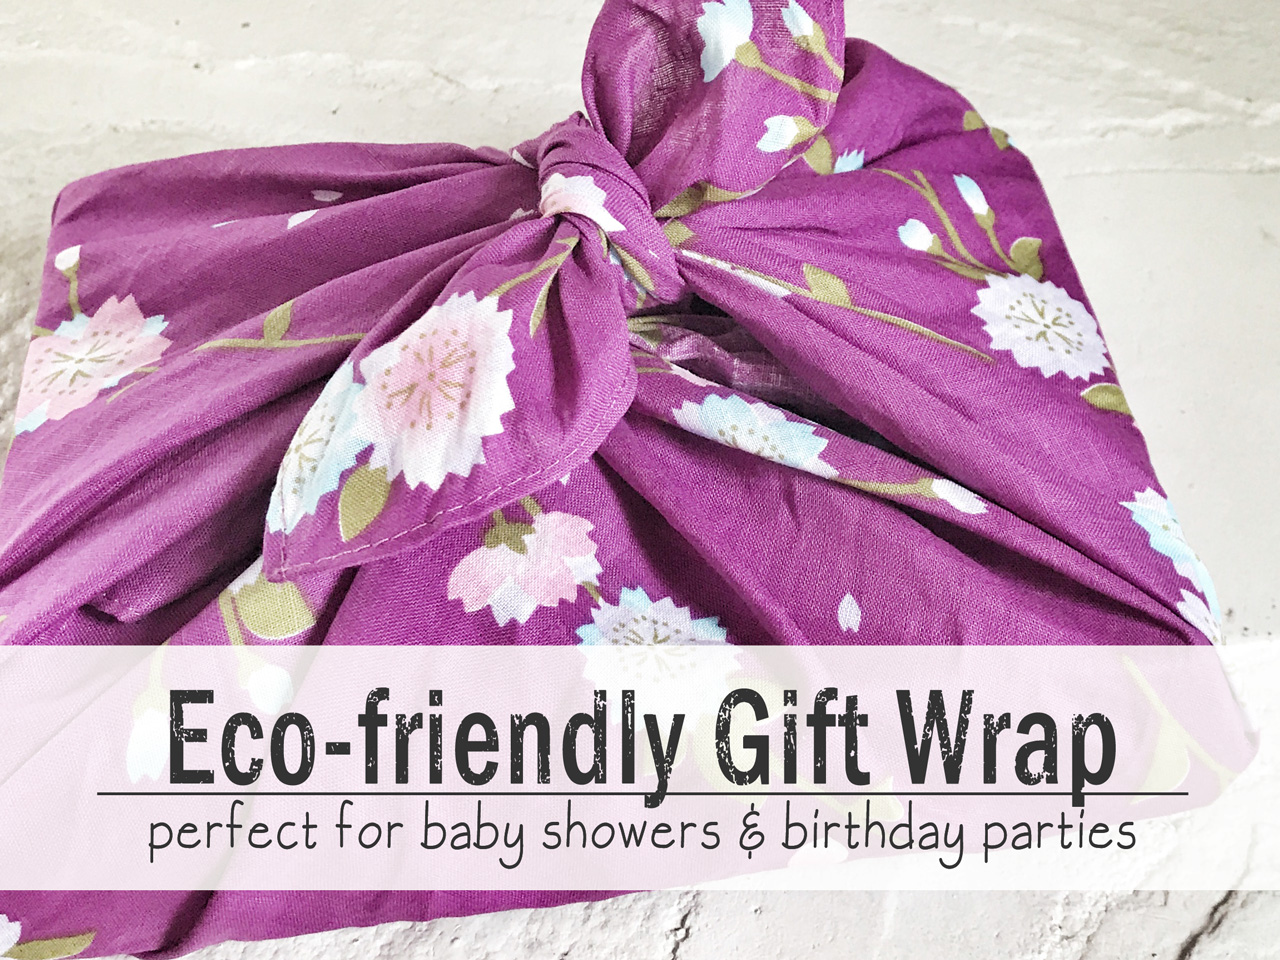 I love this idea for eco-friendly gift wrapping baby and birthday party gifts - Trendy Little Sweethearts